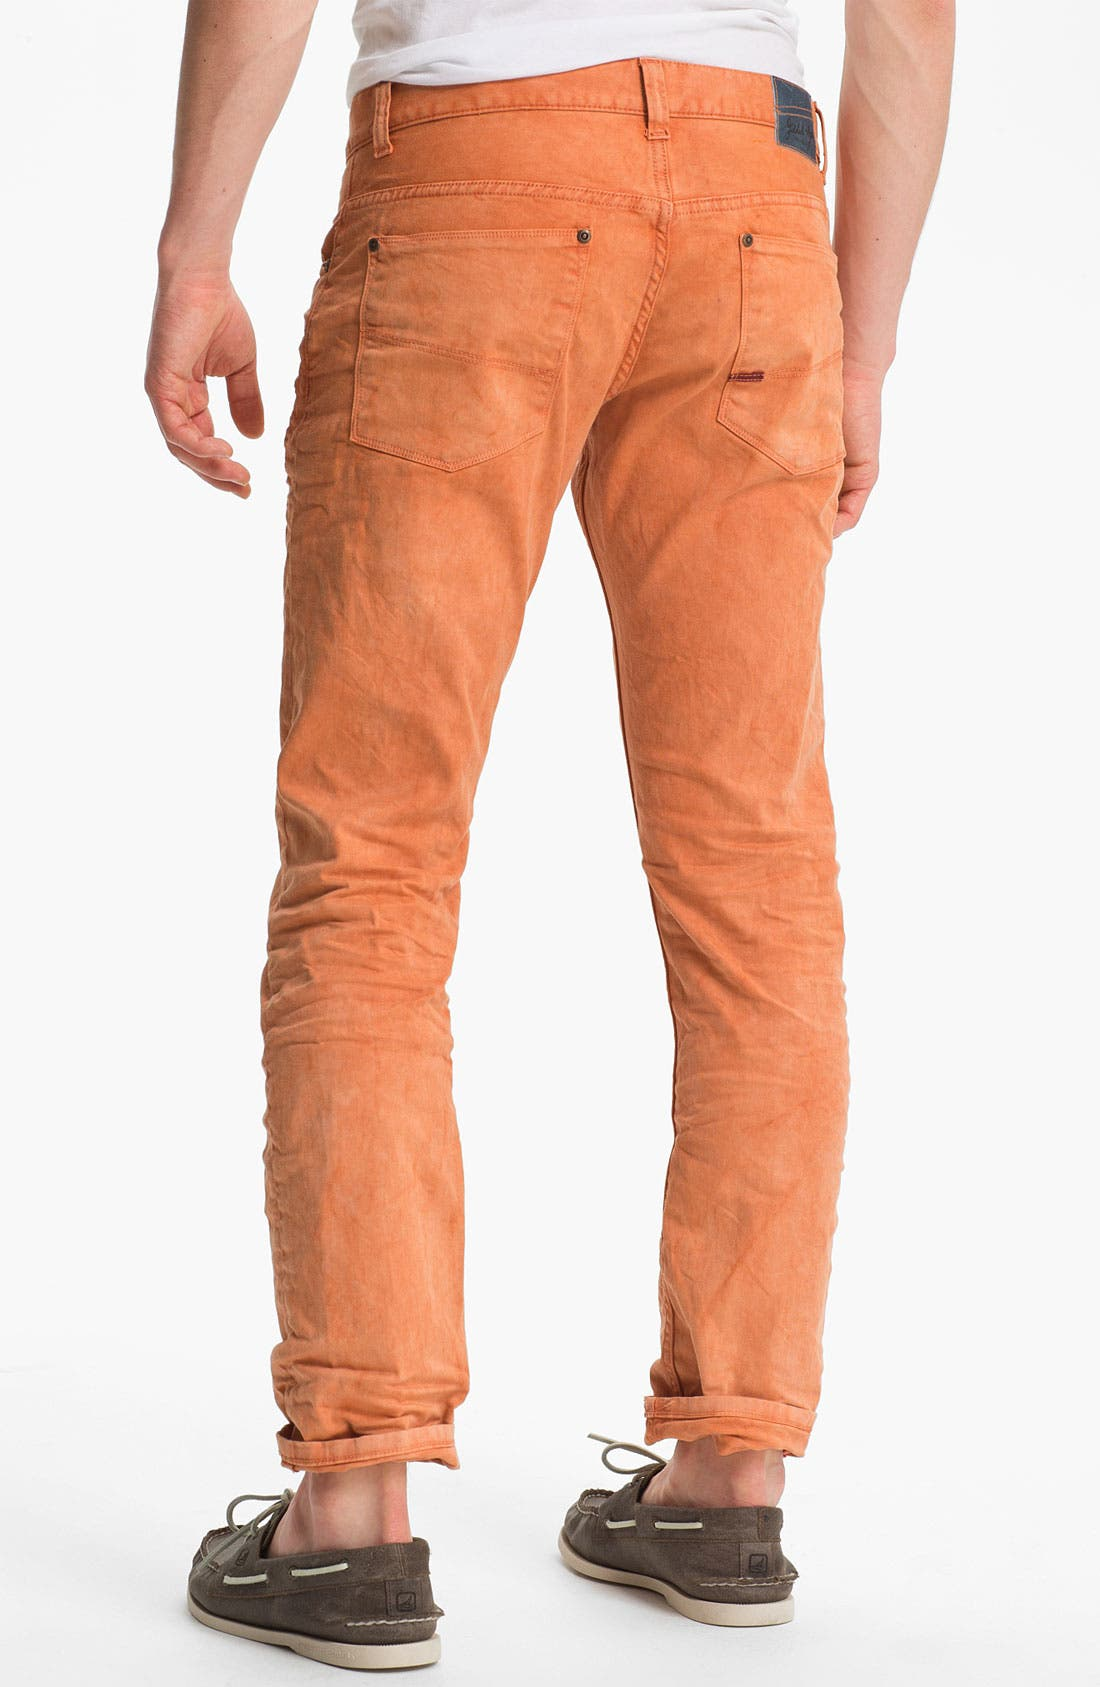 Alternate Image 1 Selected - Gilded Age 'Morrison' Slim Fit Jeans (Apricot)